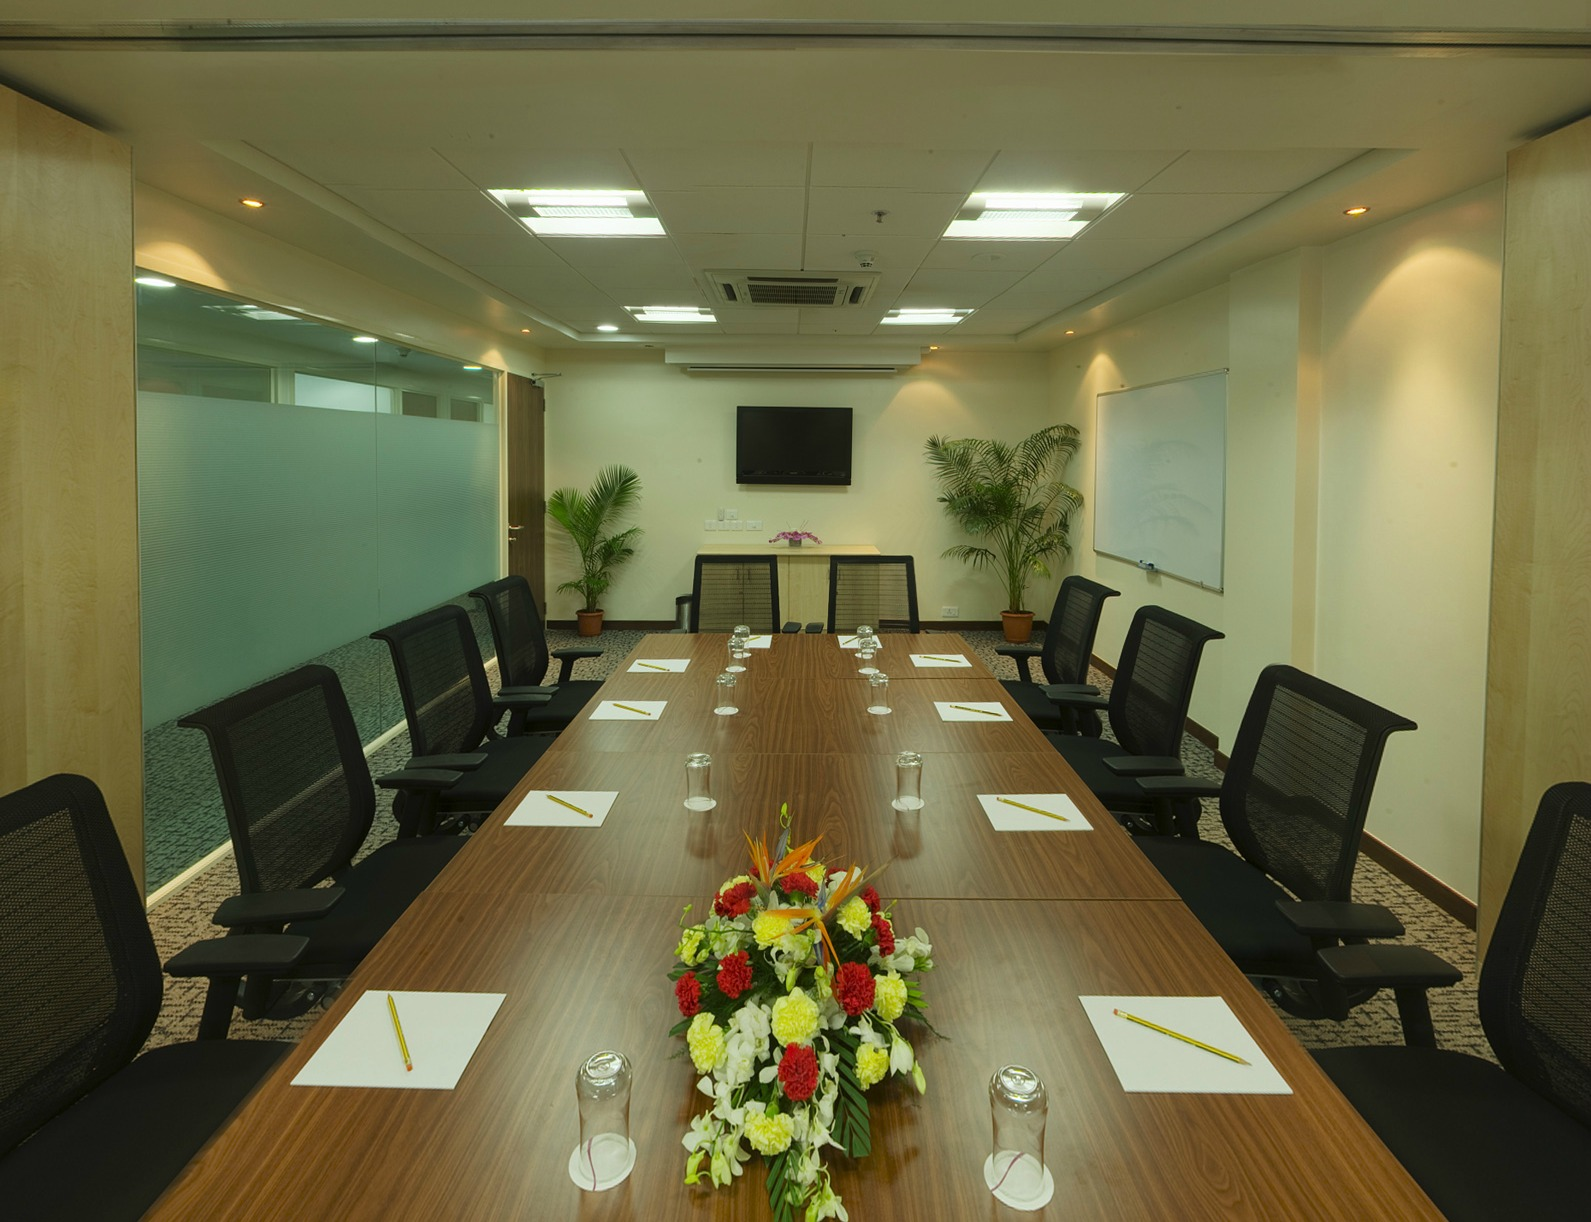 How to plan a successful business event in meeting rooms for Banquet room layout planner